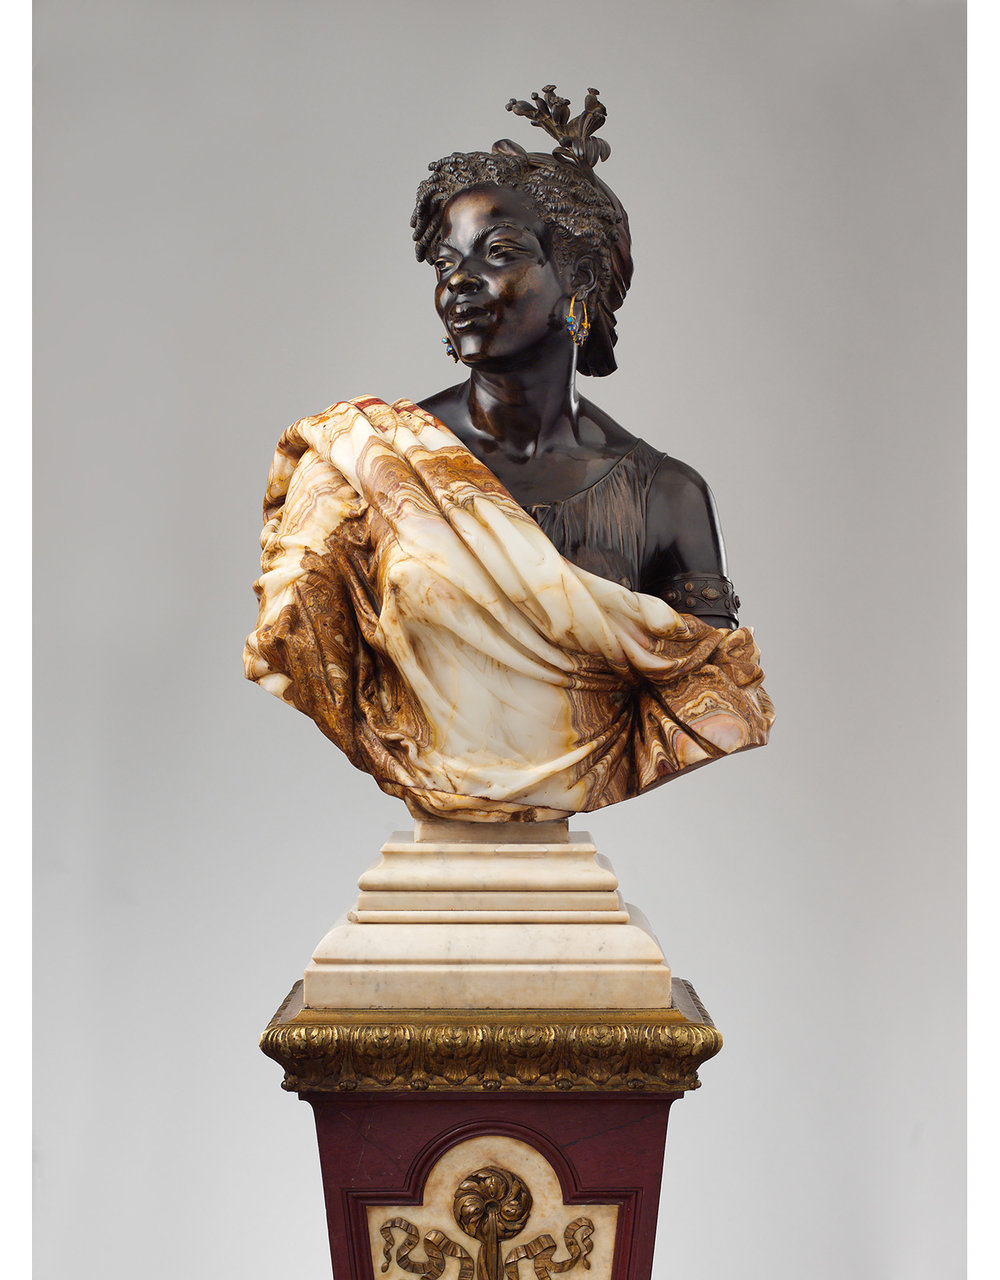 "Charles-Henri-Joseph Cordier, attributed to designs by Charles-François Rossigneux, ""La Capresse des Colonies"" (1861). The Metropolitan Museum of Art, European Sculpture and Decorative Arts Fund, 2006."